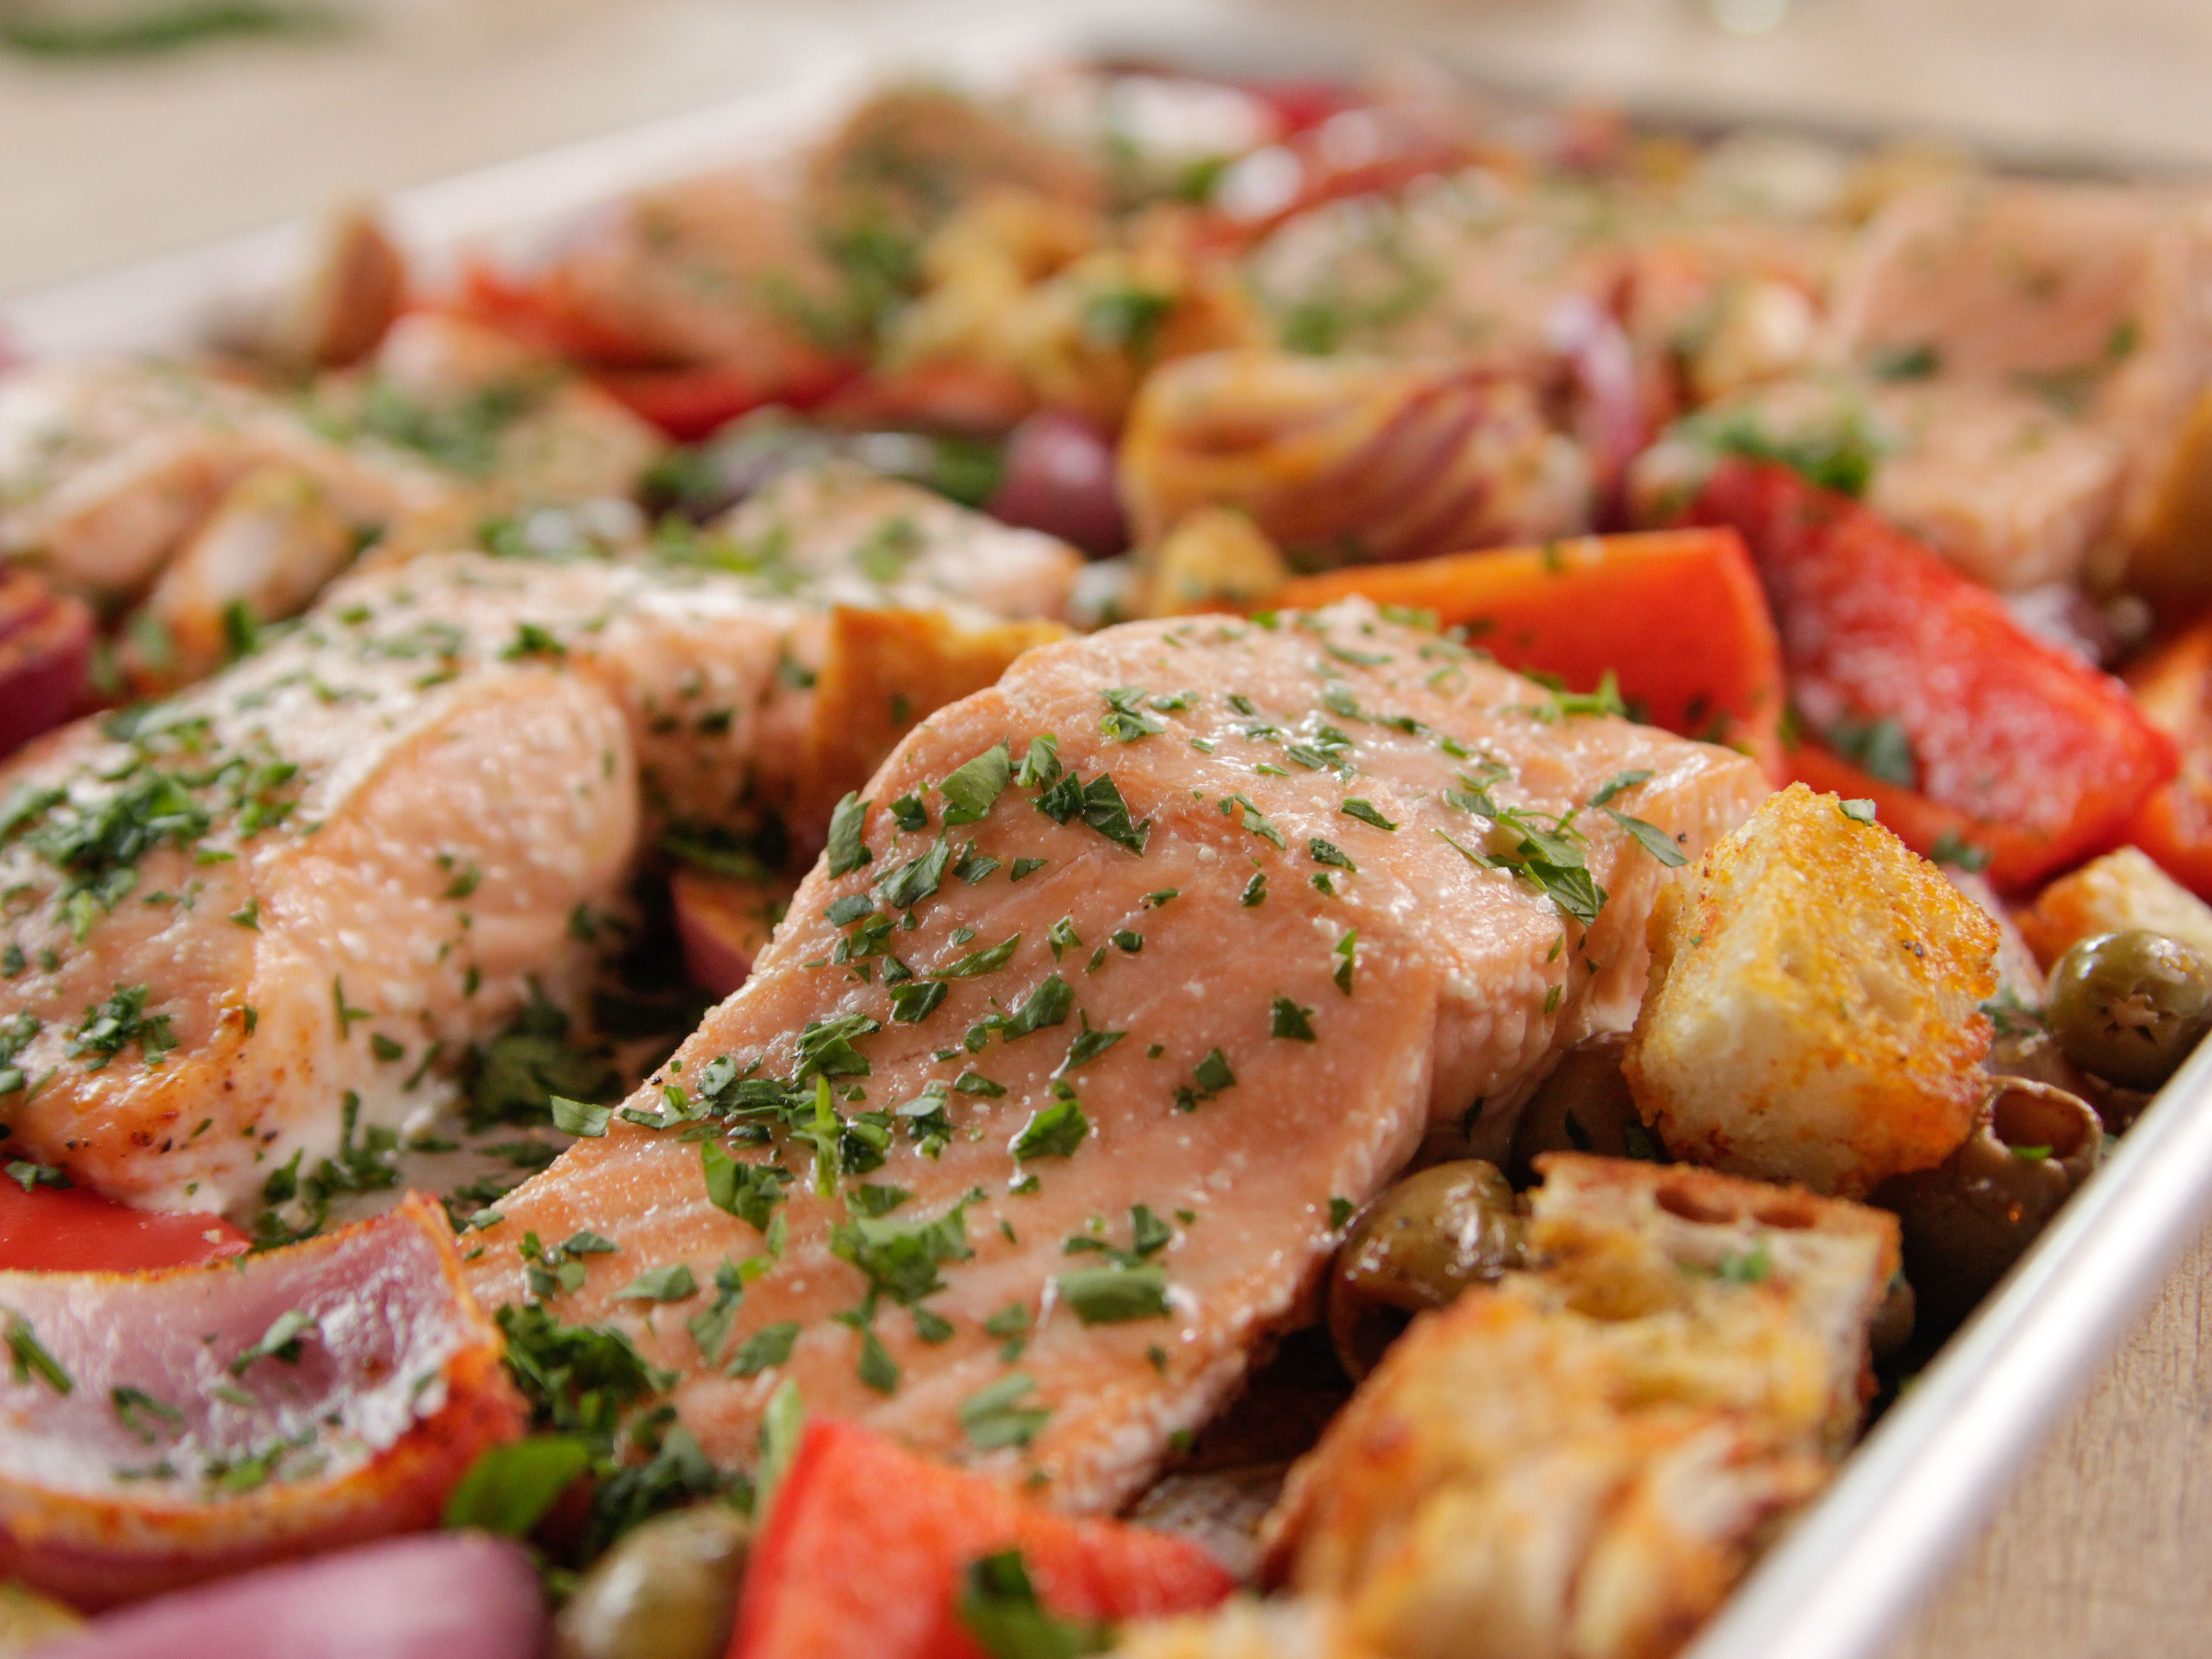 Spanish baked salmon recipe salmon recipes food network spanish baked salmon recipe salmon recipes food networkpioneer woman and salmon forumfinder Image collections